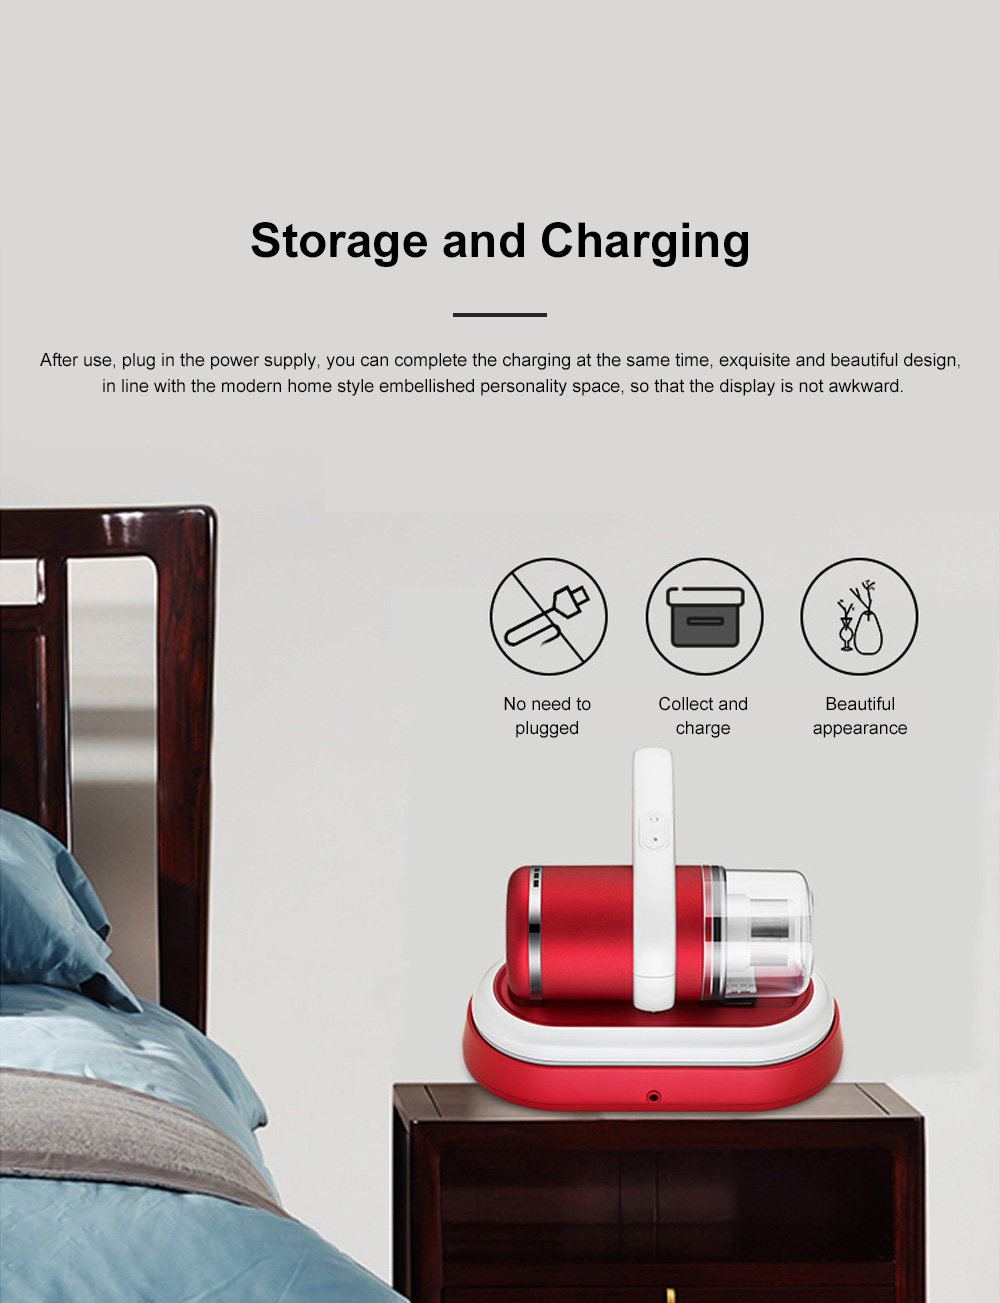 Home Use Wireless Mite Remover Handheld UV Sterilization Cleaner for Bed Bedroom Sofa Clothes Anti Dust Mite Device 7